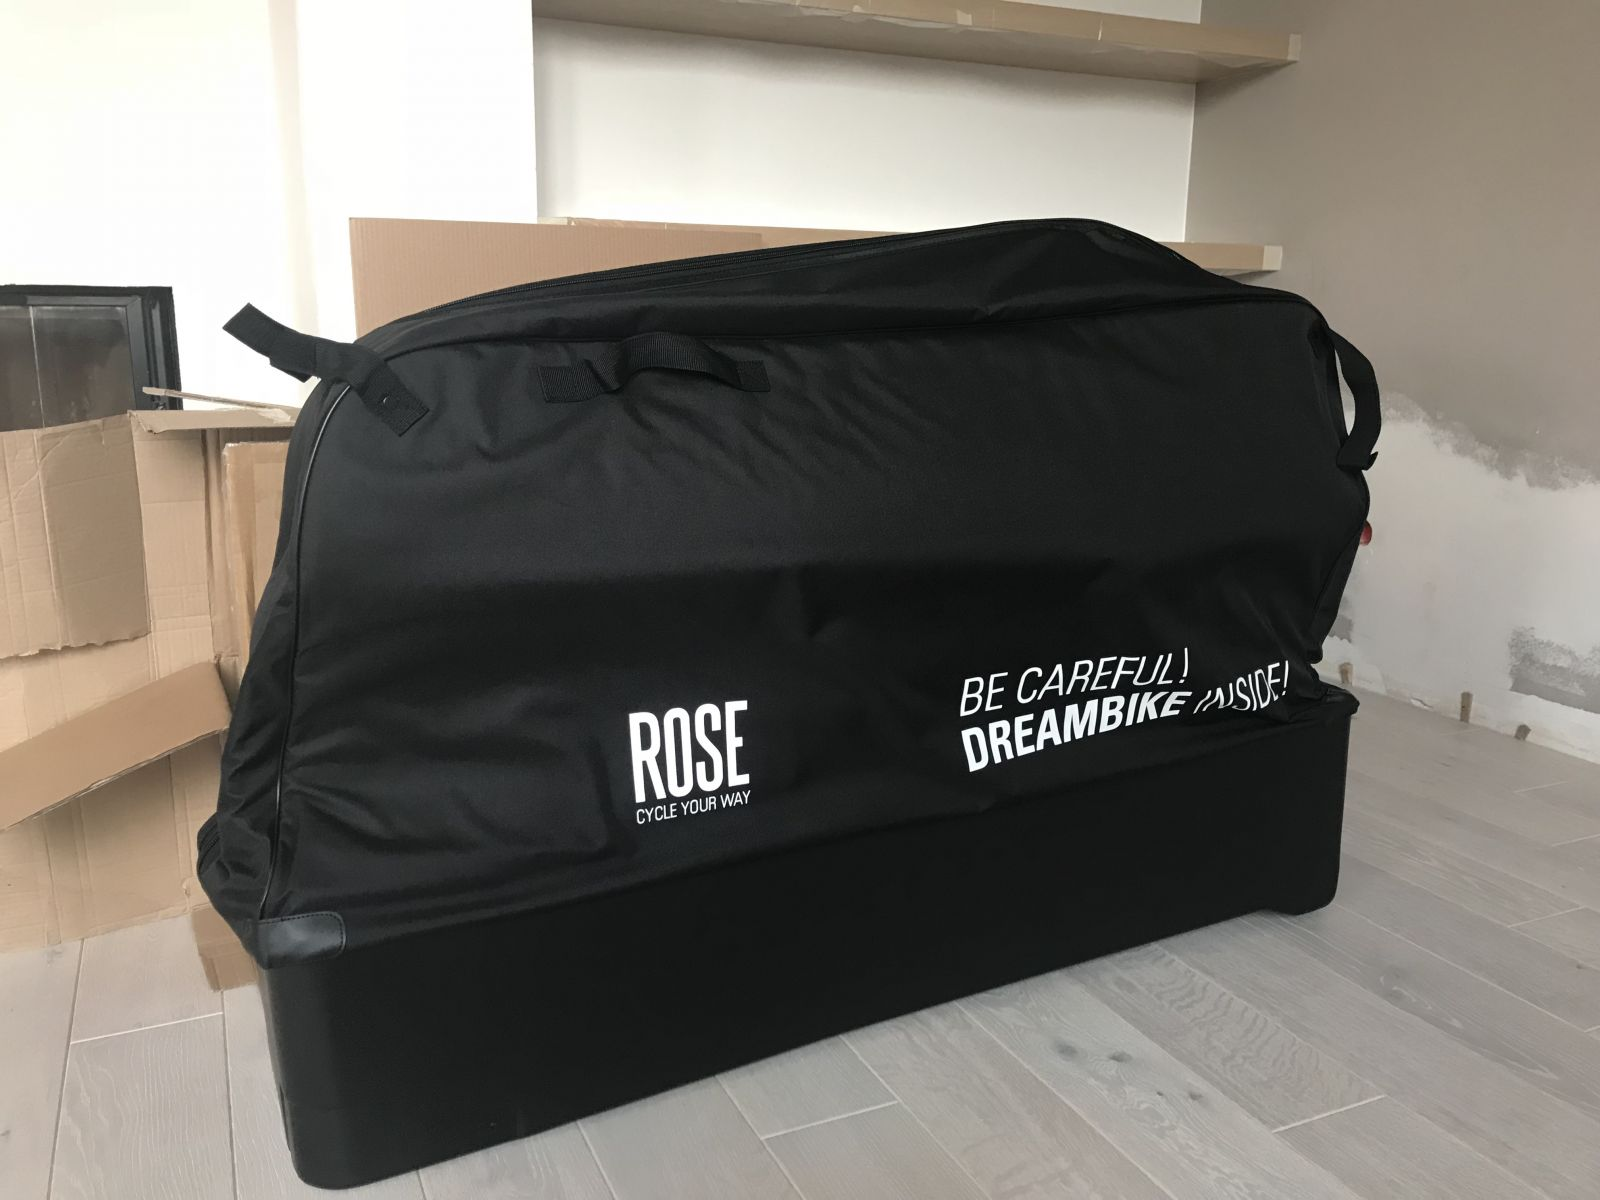 Flight bike bag